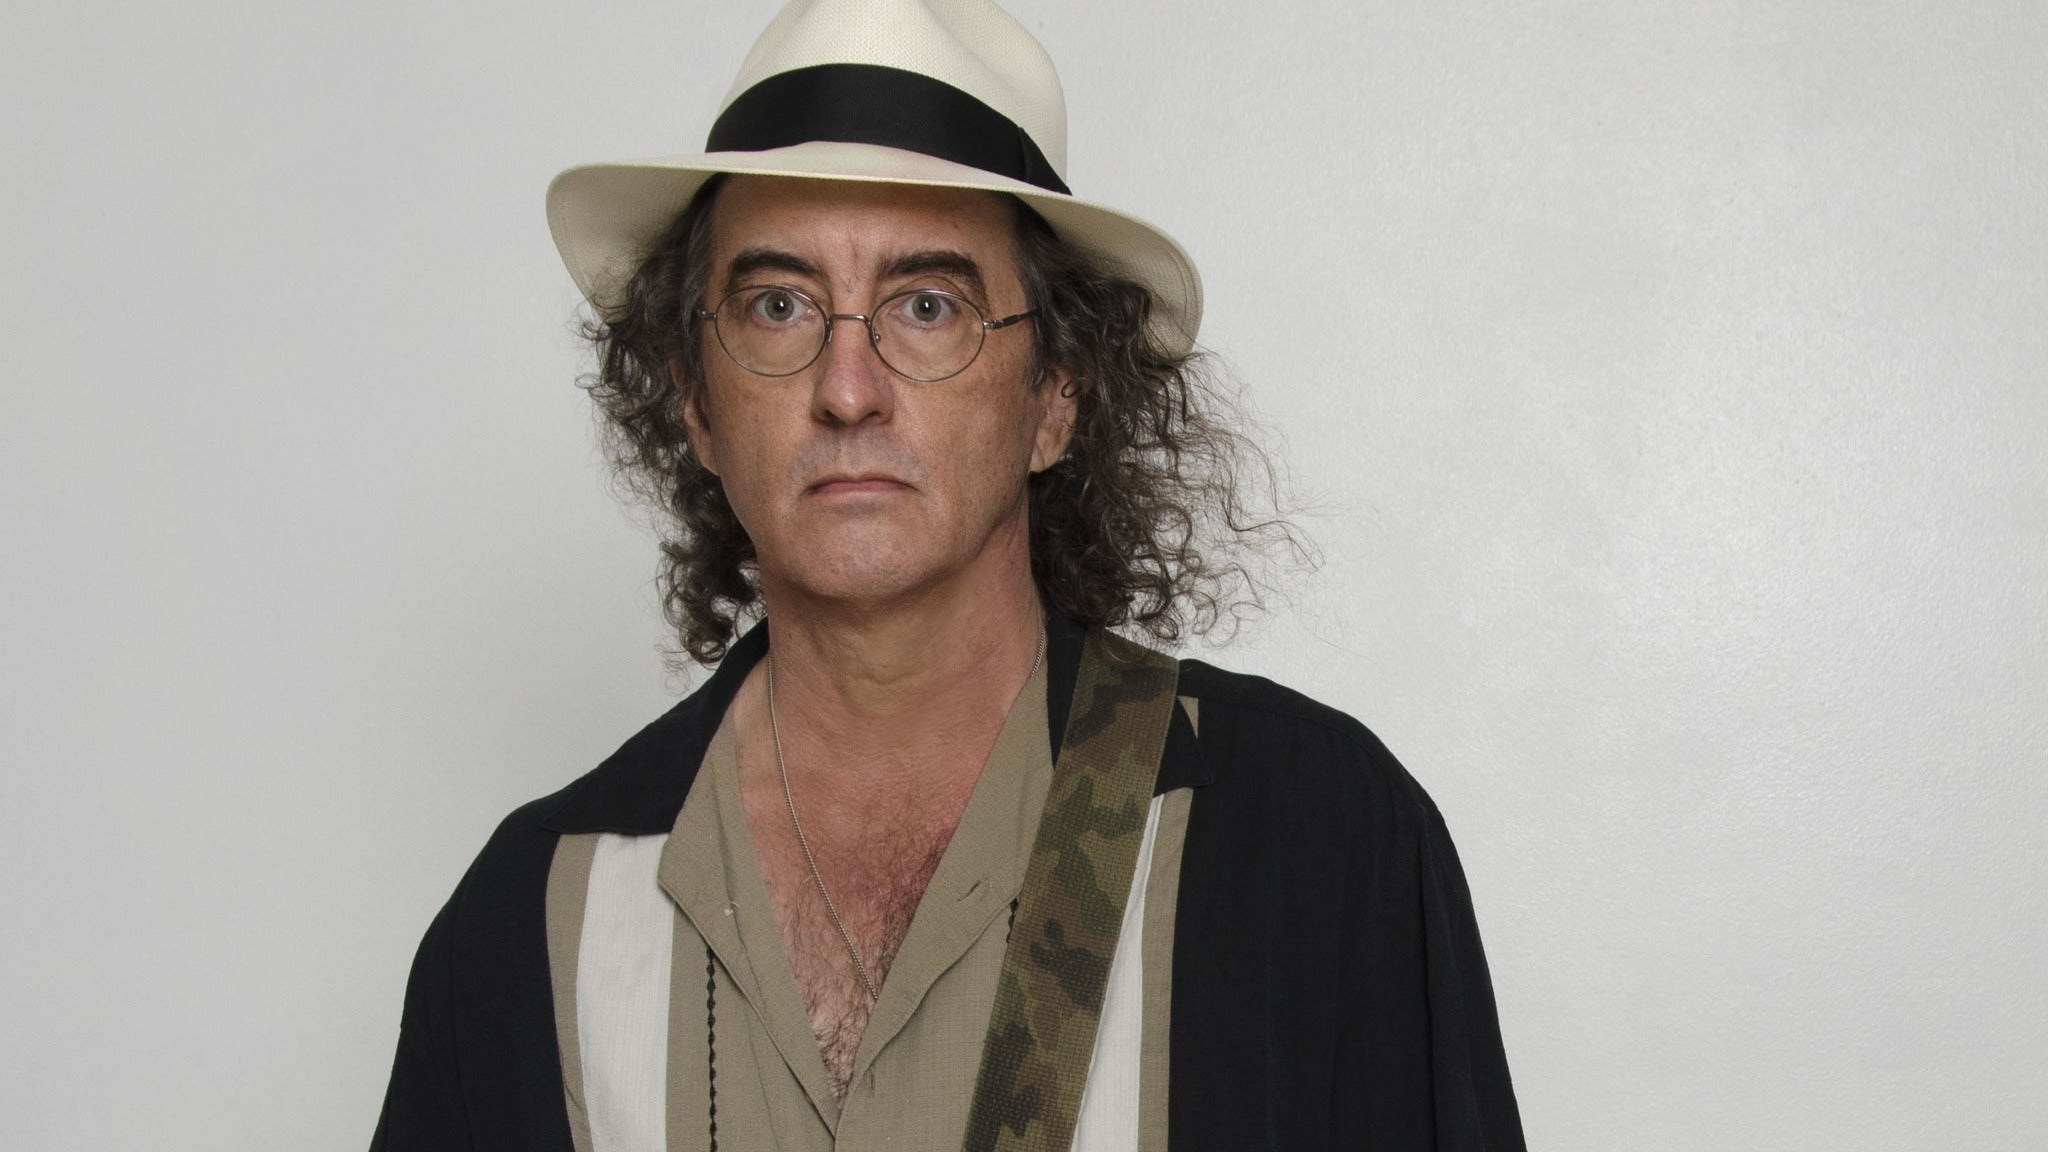 James McMurtry at Mesa Theatre & Club